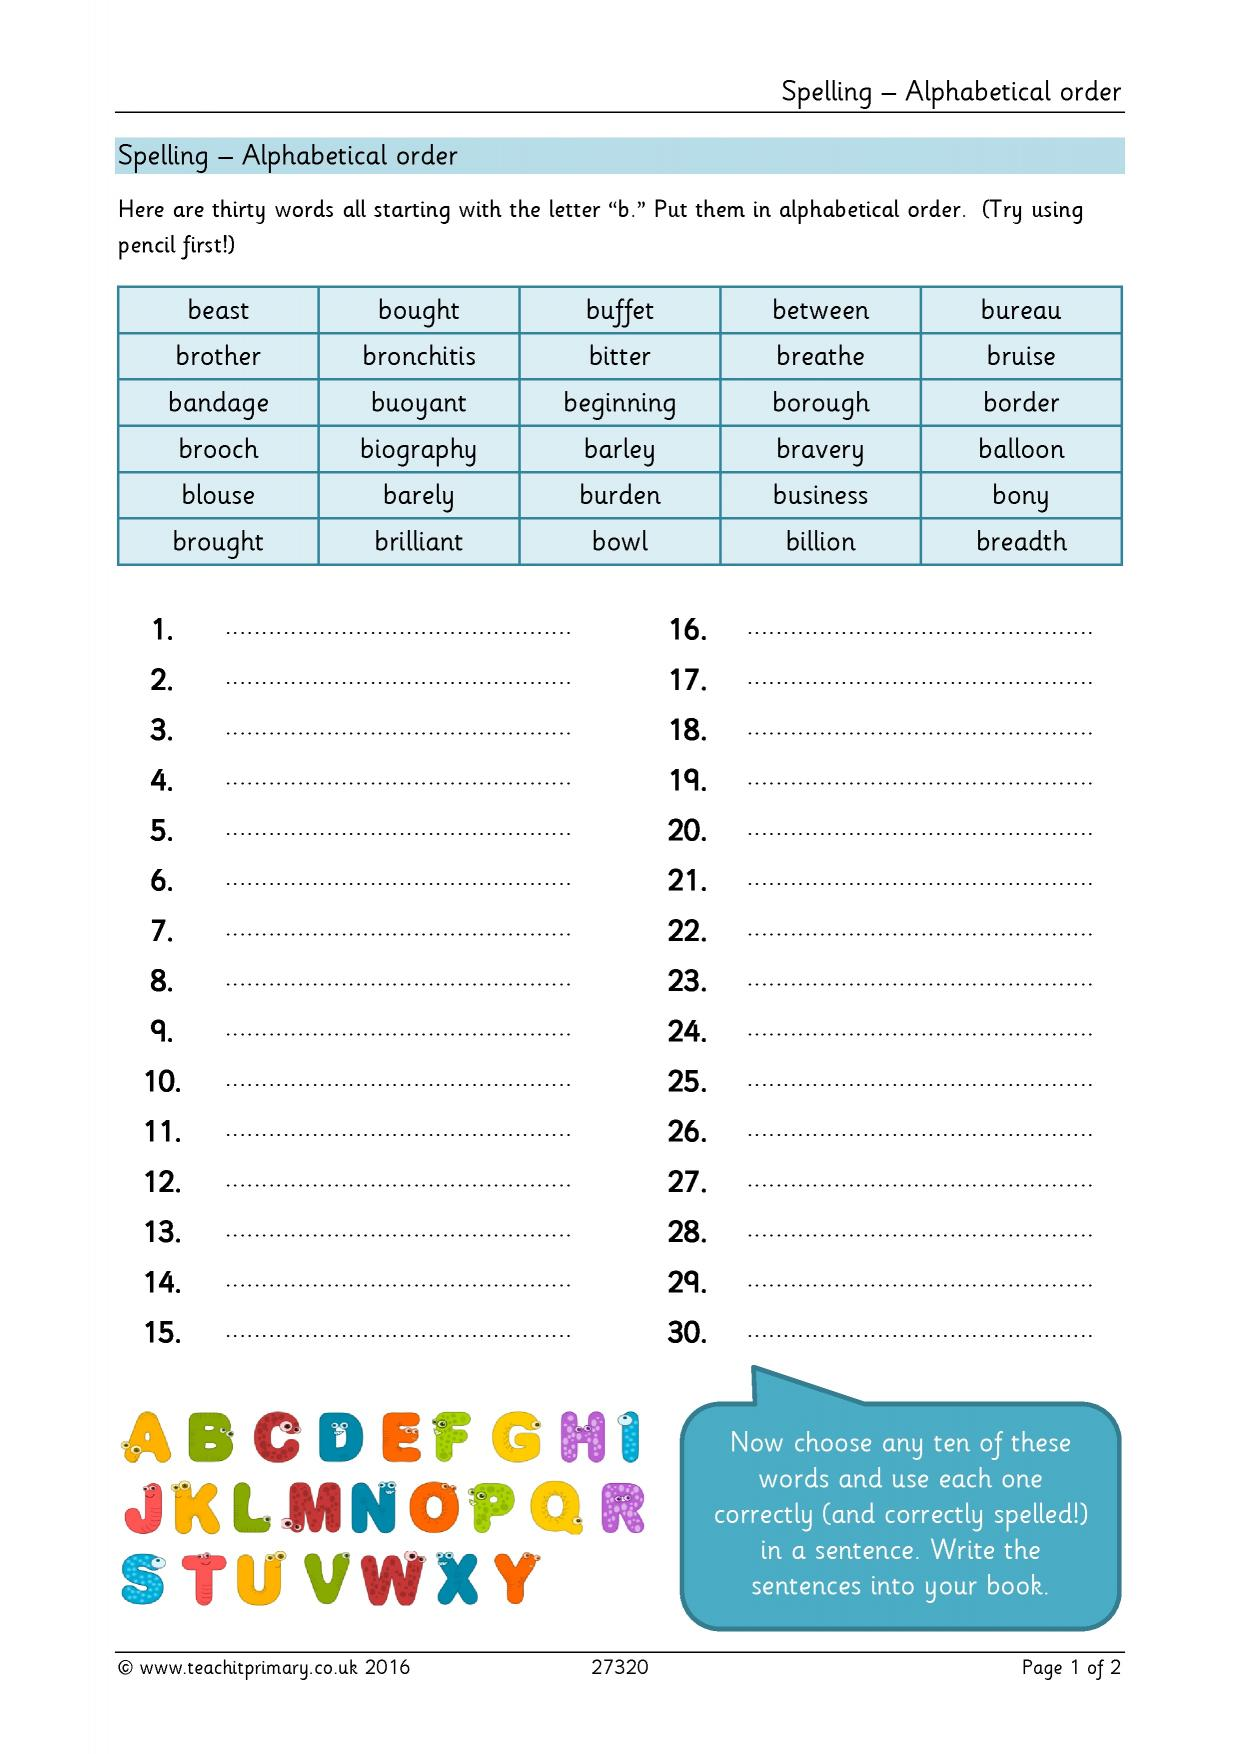 Spelling Practice Worksheets Ks2